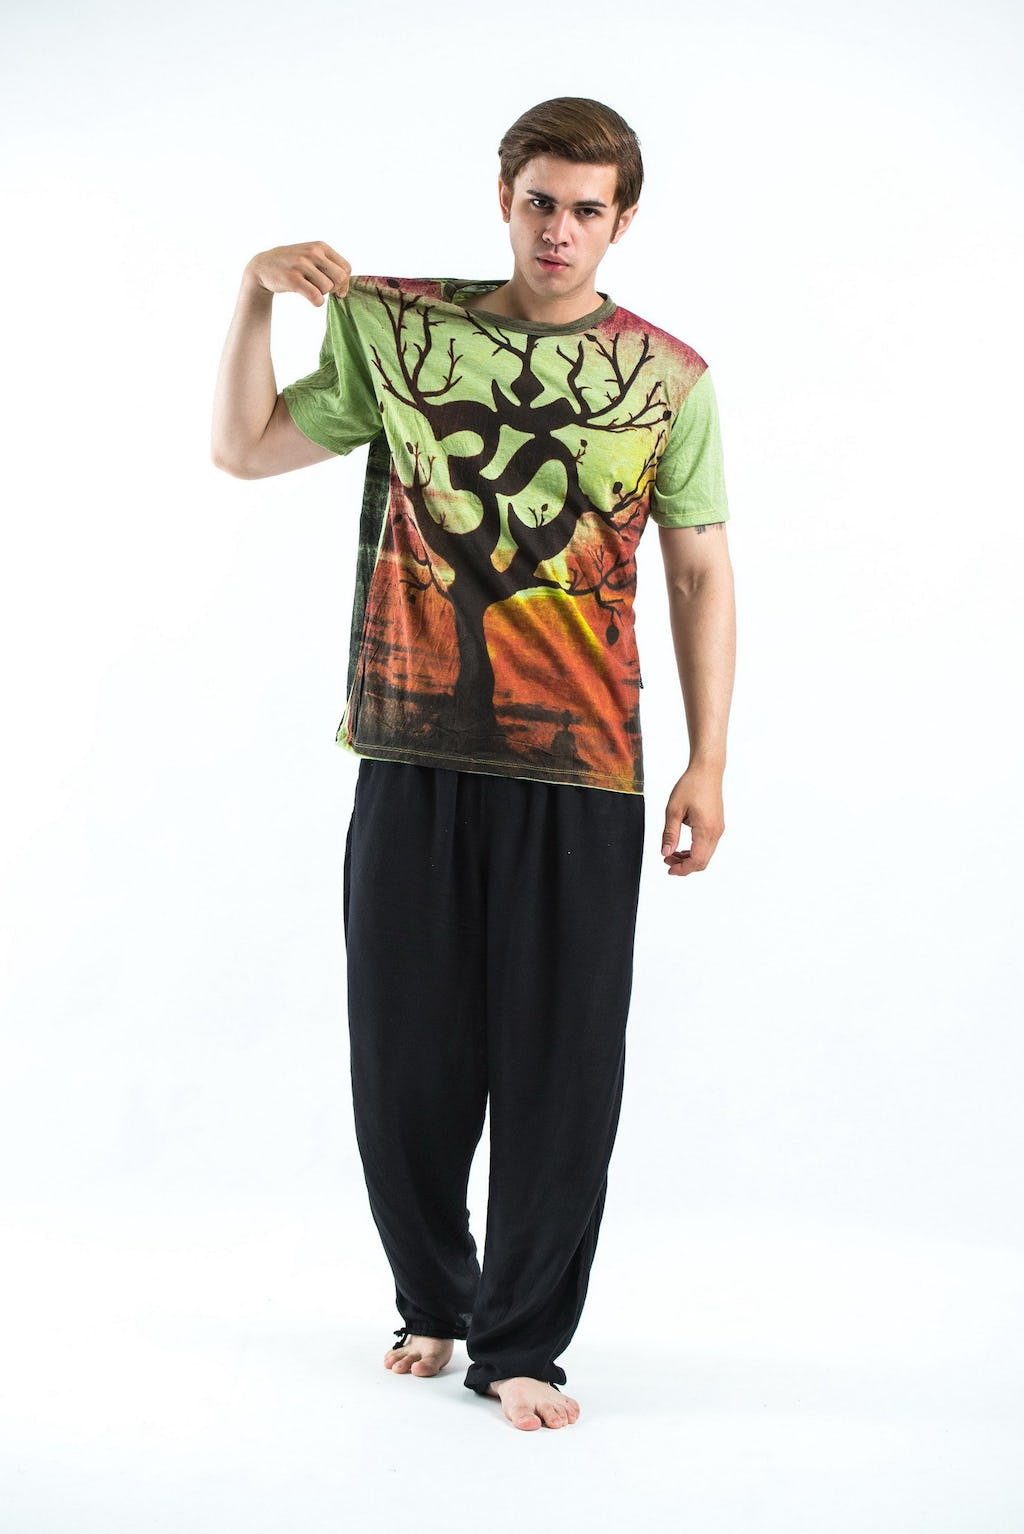 Sure design t shirts and clothing - Sure Design Mens Ohm Tree T Shirt Green